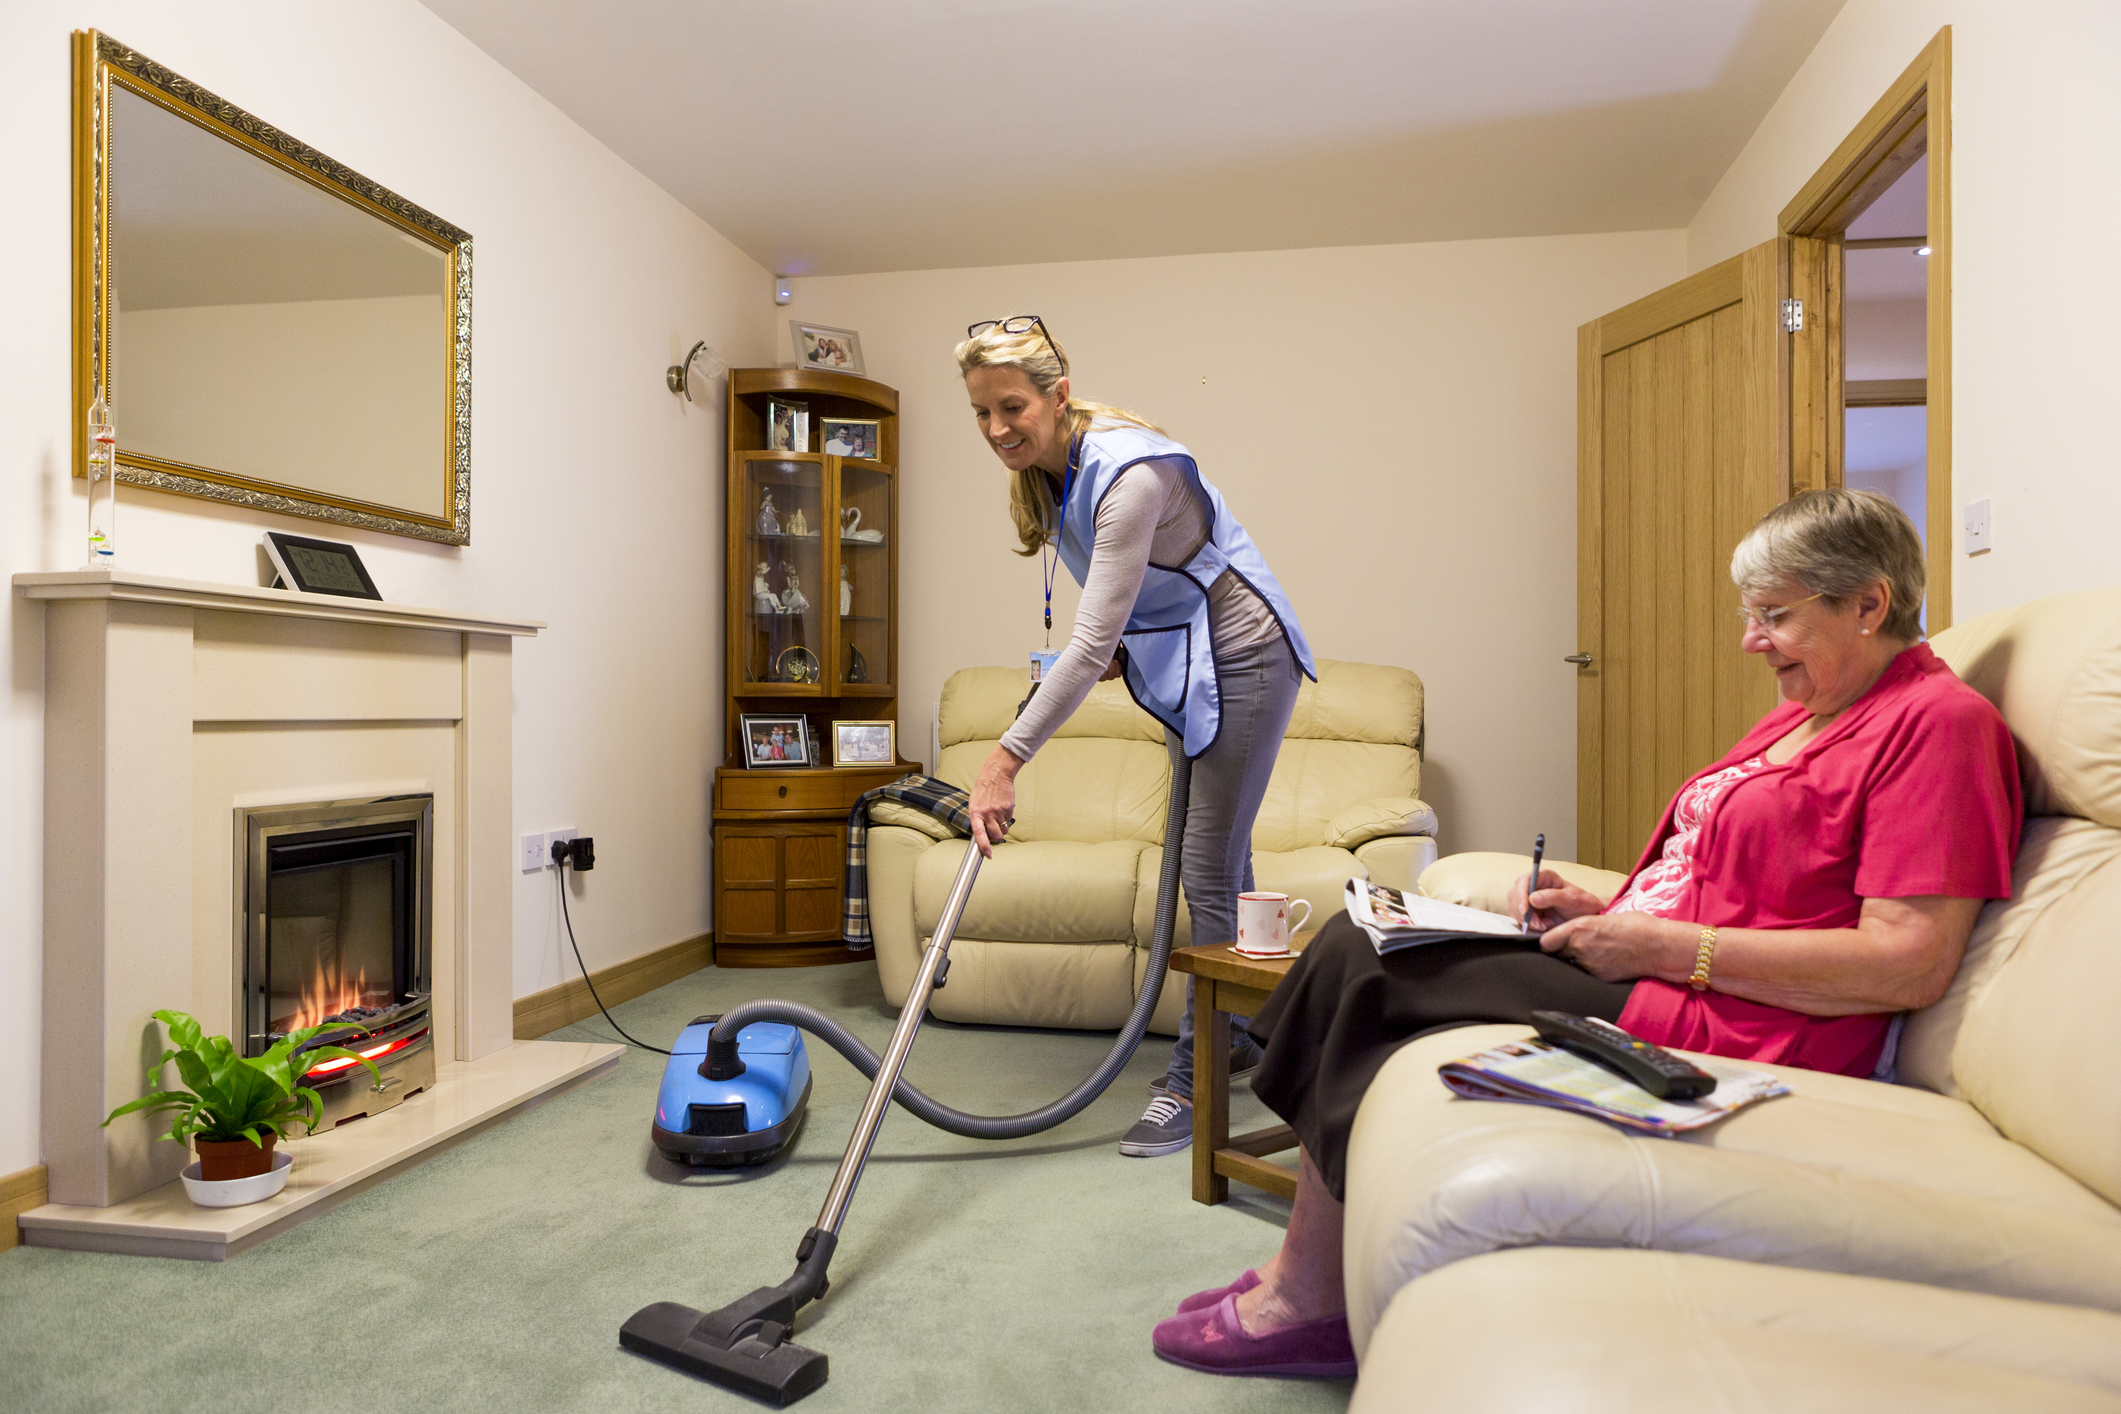 Household Assistance - We have the best trained carers who can assist your loved one with everyday tasks such as:Light houseworkMeal preparation / cookingLaundryRespite for families